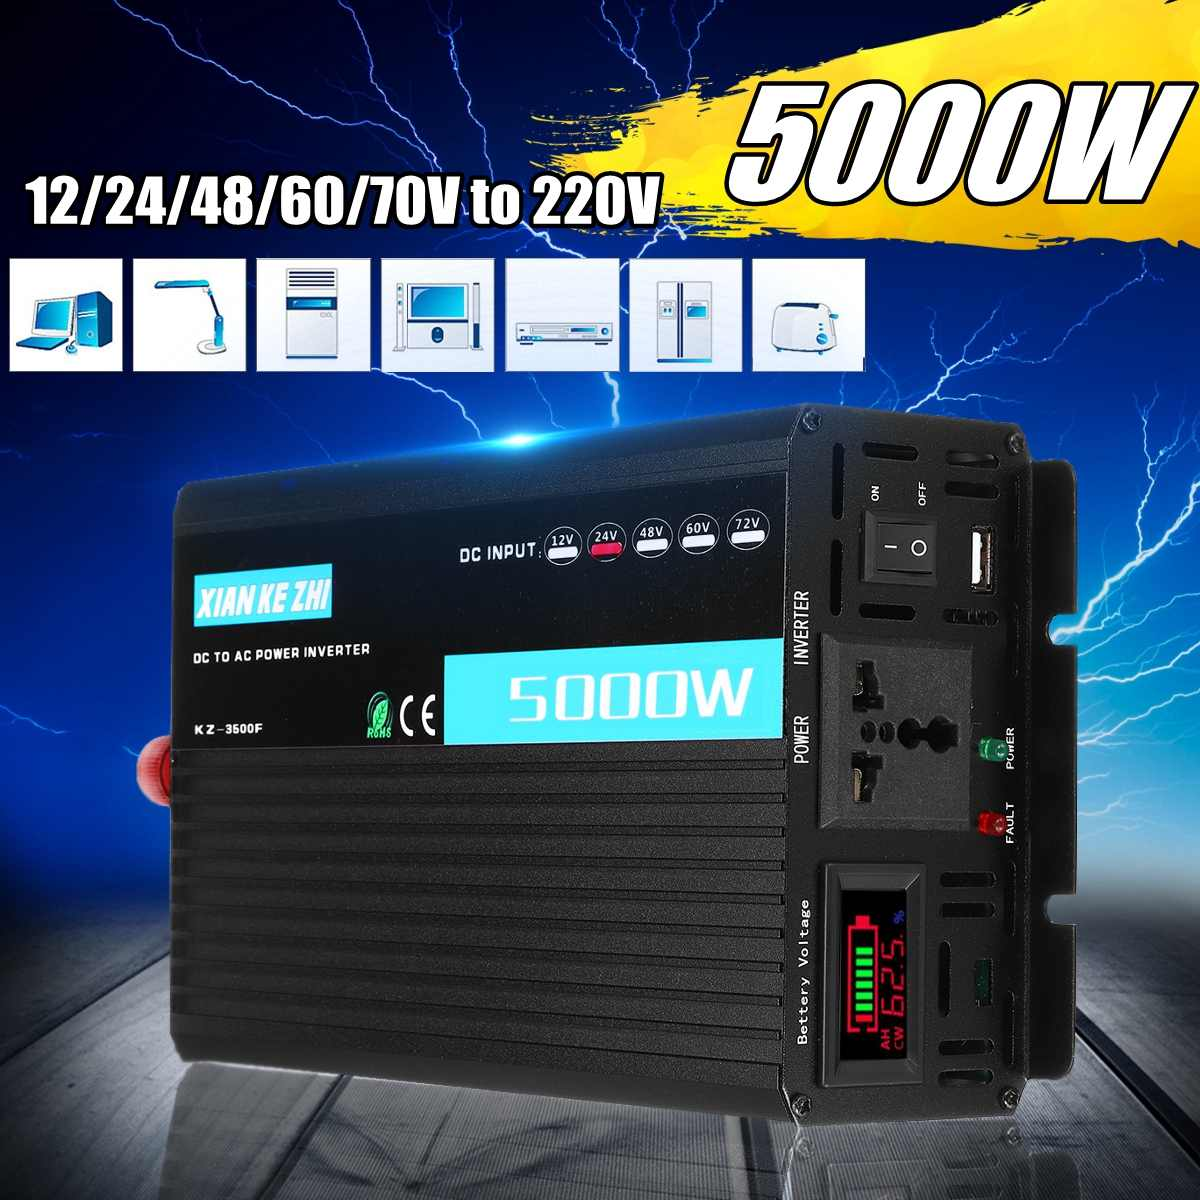 Peaks 5000W 2200W  Modified Power Inverter DC 12/24/48/60/70V to AC 220V Intelligent Multiple Protection Double LED DisplayPeaks 5000W 2200W  Modified Power Inverter DC 12/24/48/60/70V to AC 220V Intelligent Multiple Protection Double LED Display